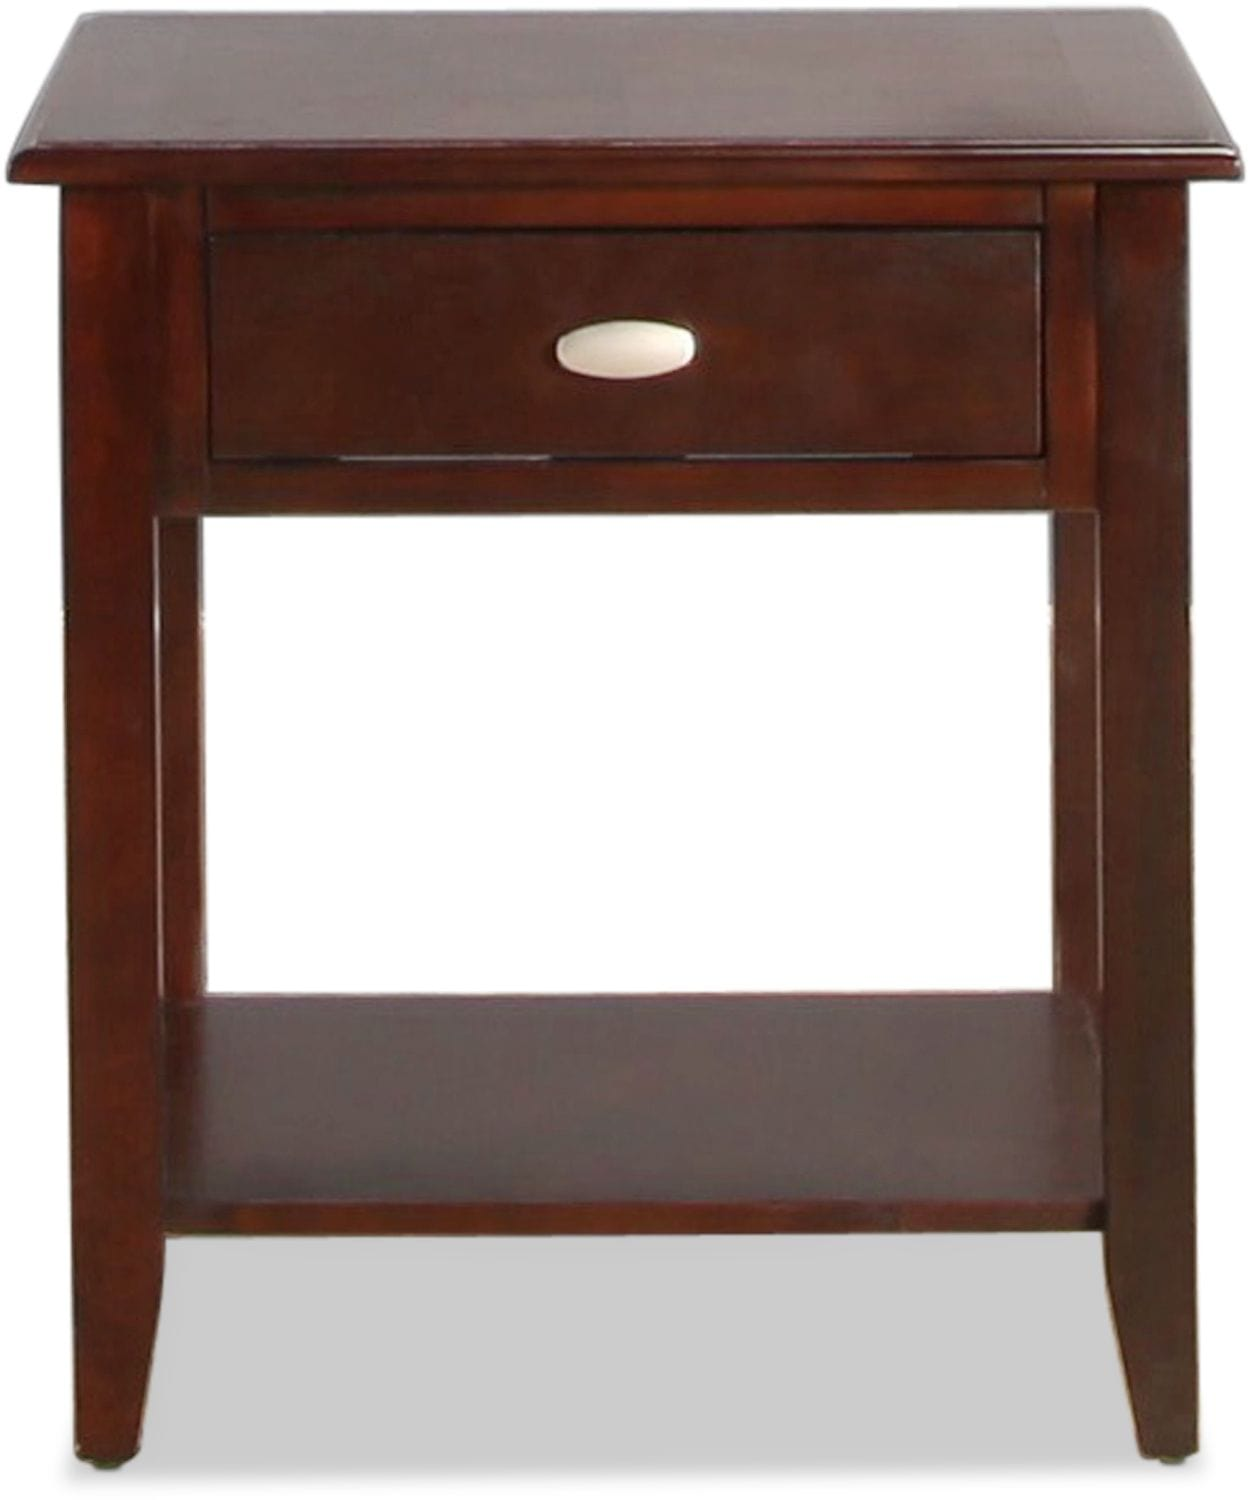 Antonia End Table End Tables 28 Images August Grove Antonia End Table Reviews Wayfair